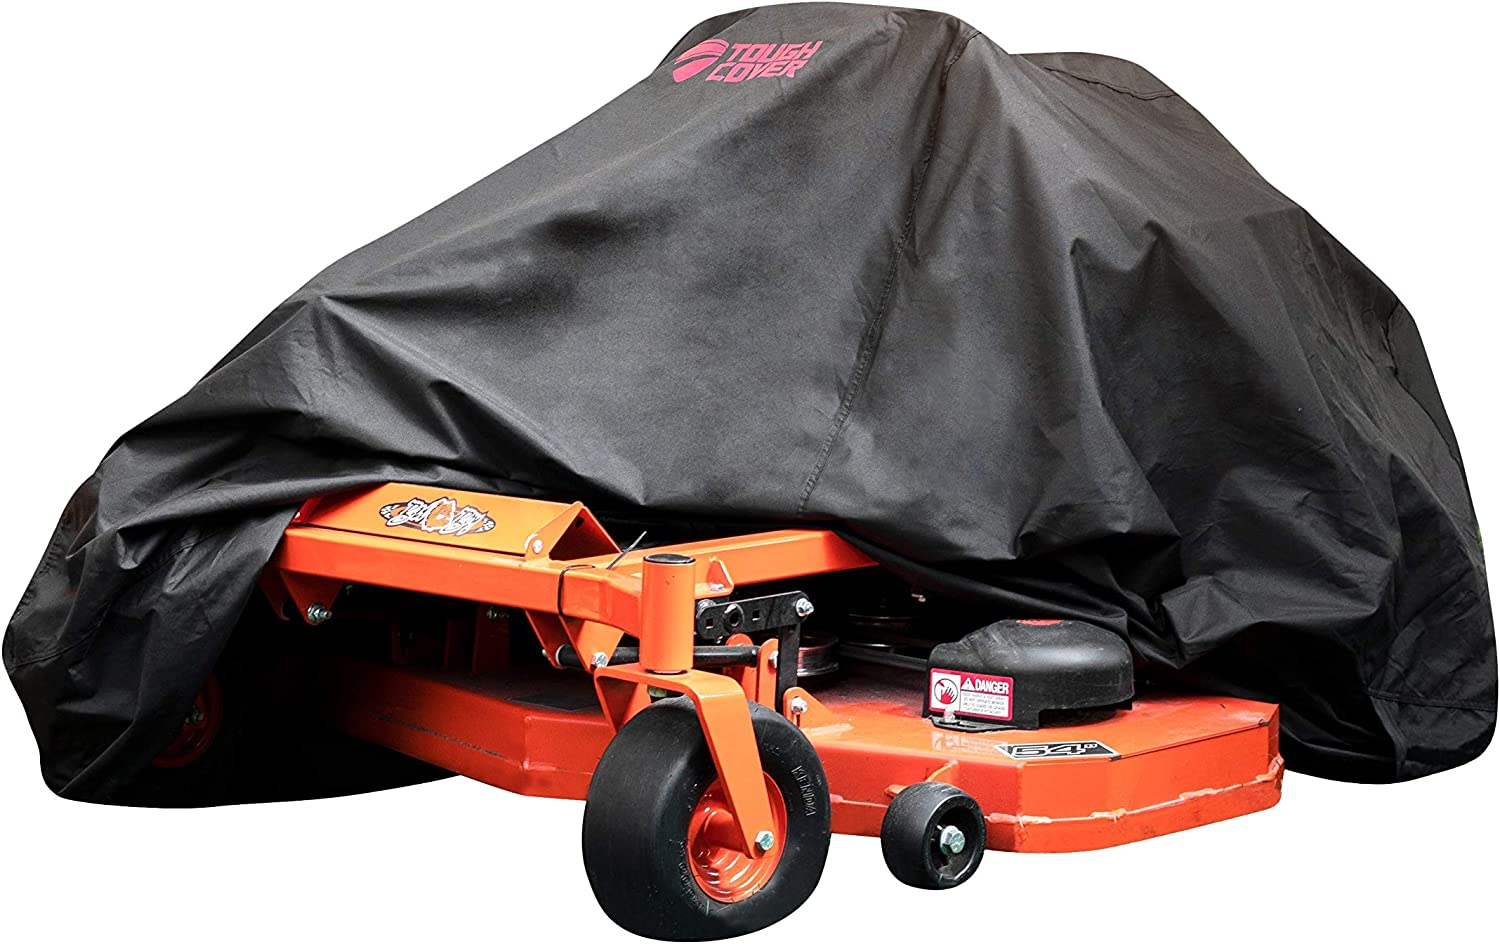 ToughCover Premium Zero-Turn Mower Cover. Heavy Duty 600D Marine Grade Fabric. Universal Fit. Weather, UV & Mold Protection.